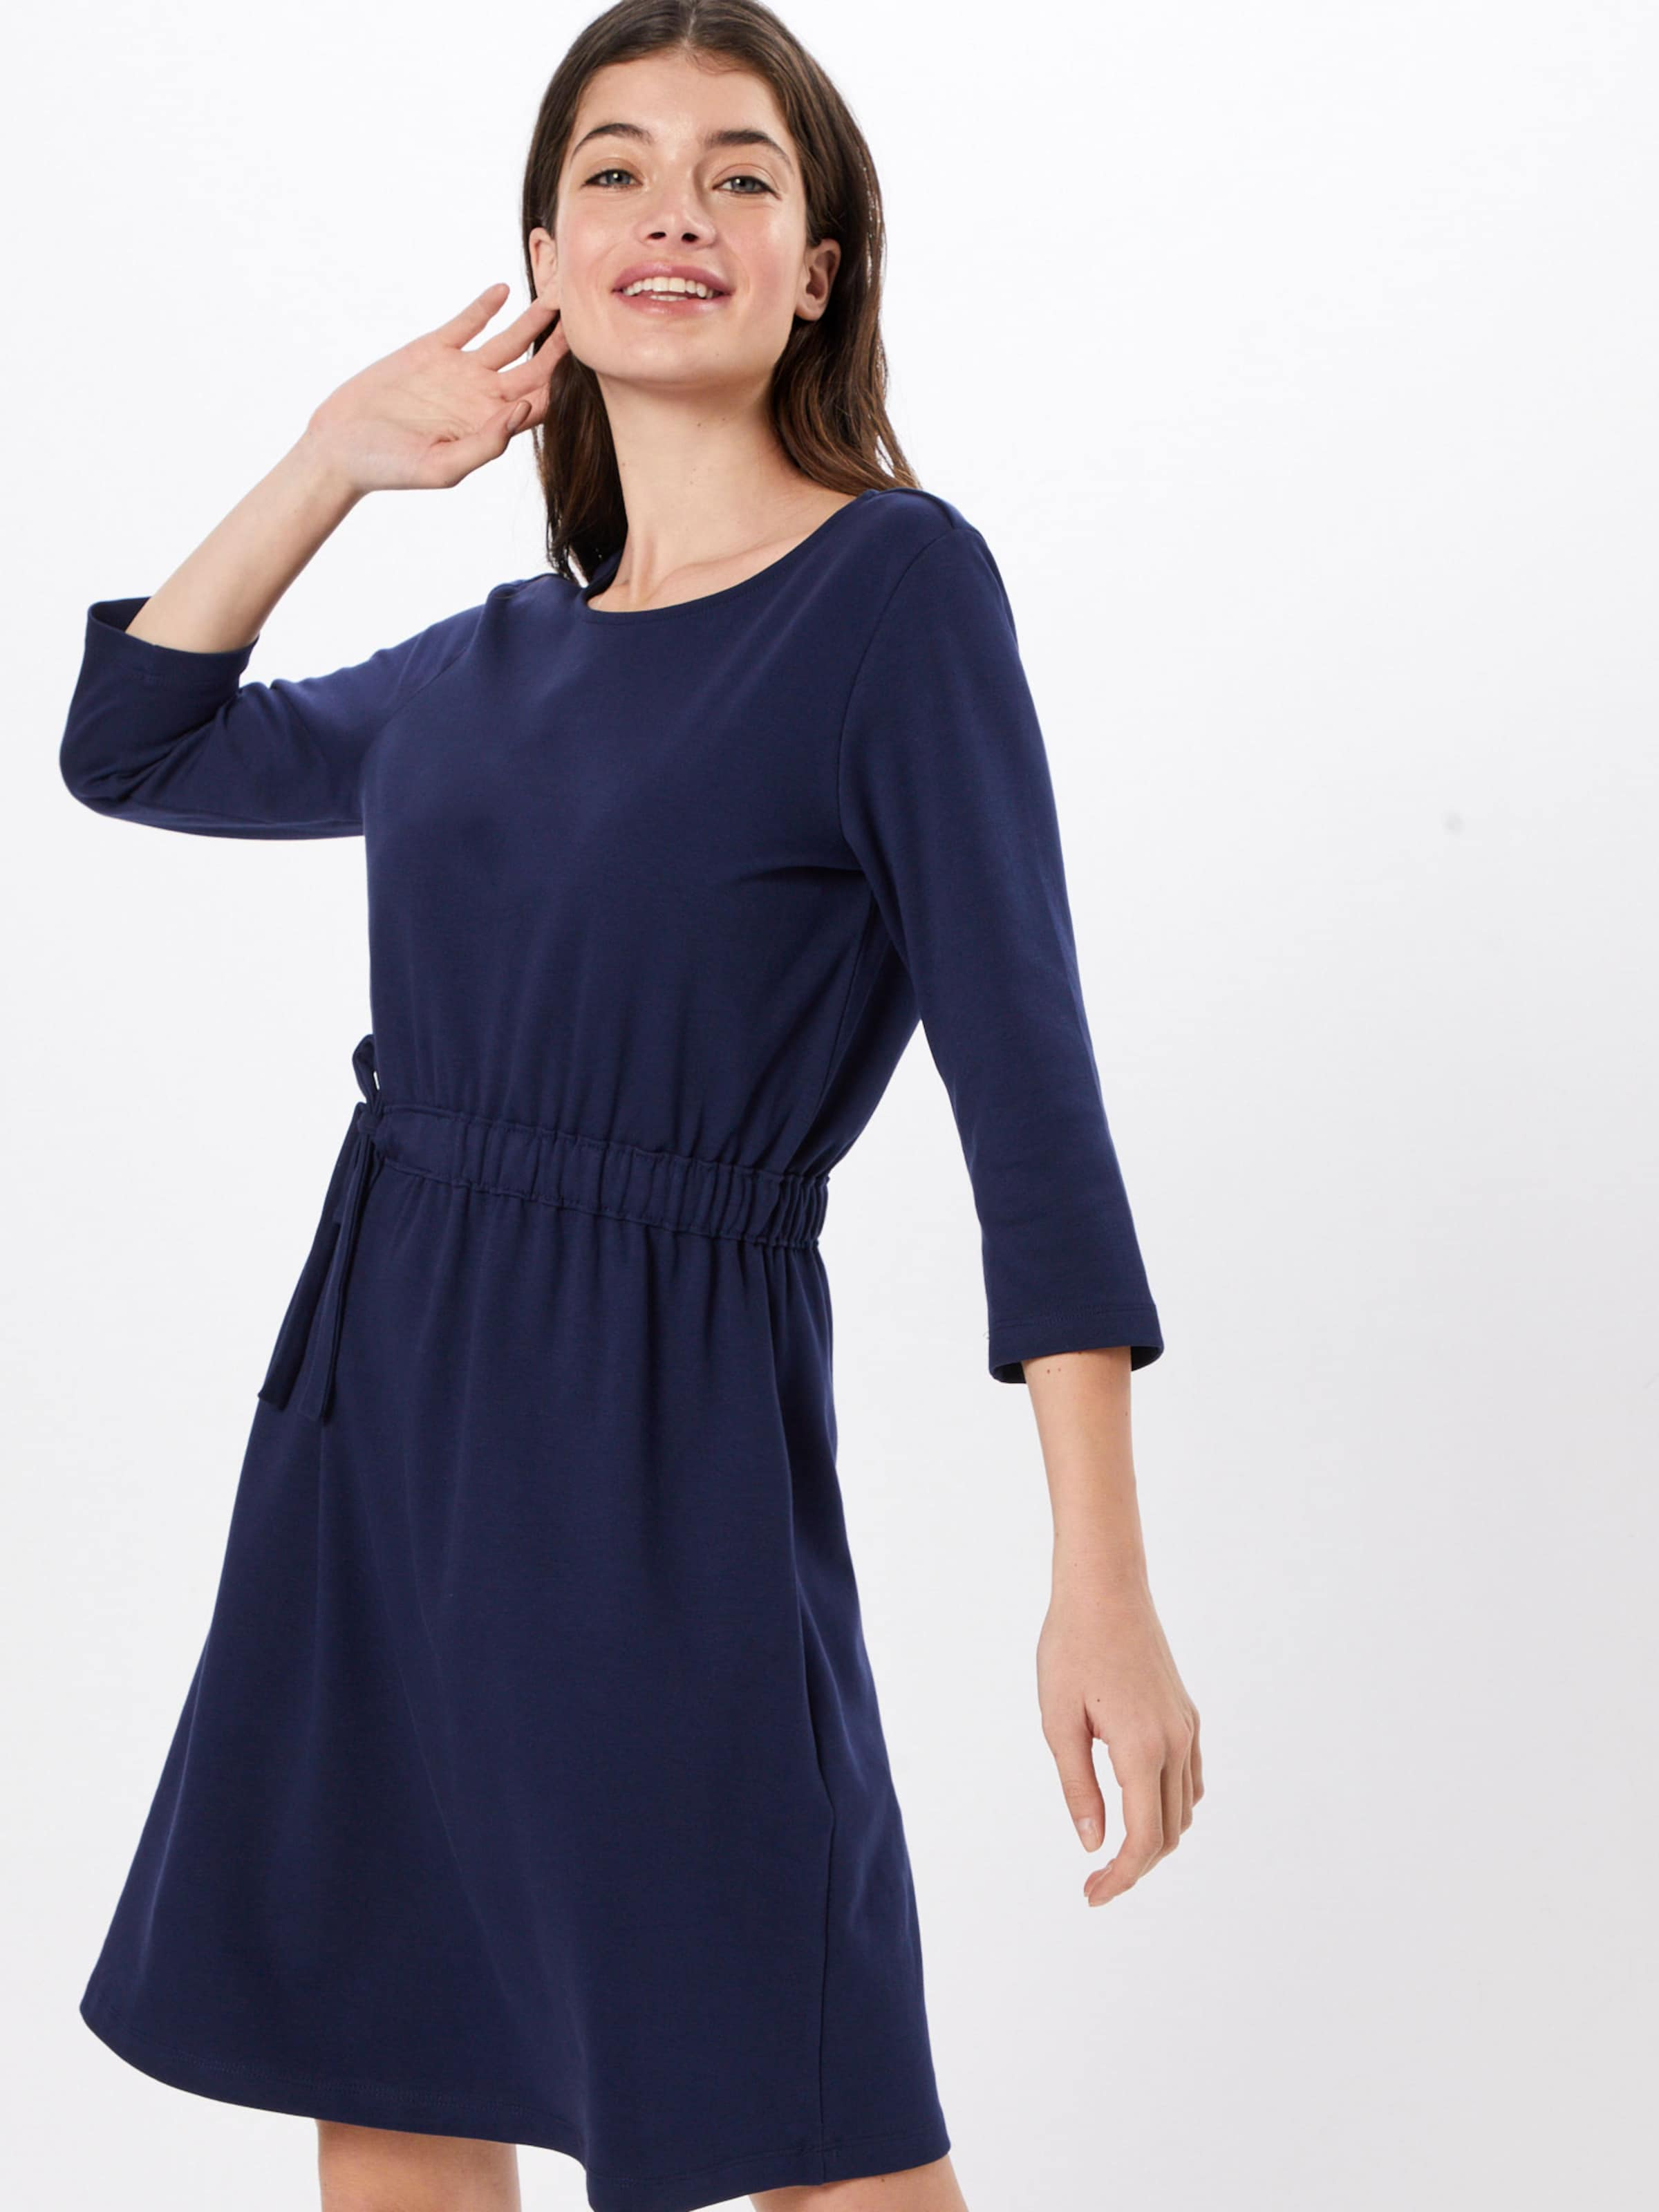 Kleid Dunkelblau Denim In Tailor Tom Ow8nPXk0